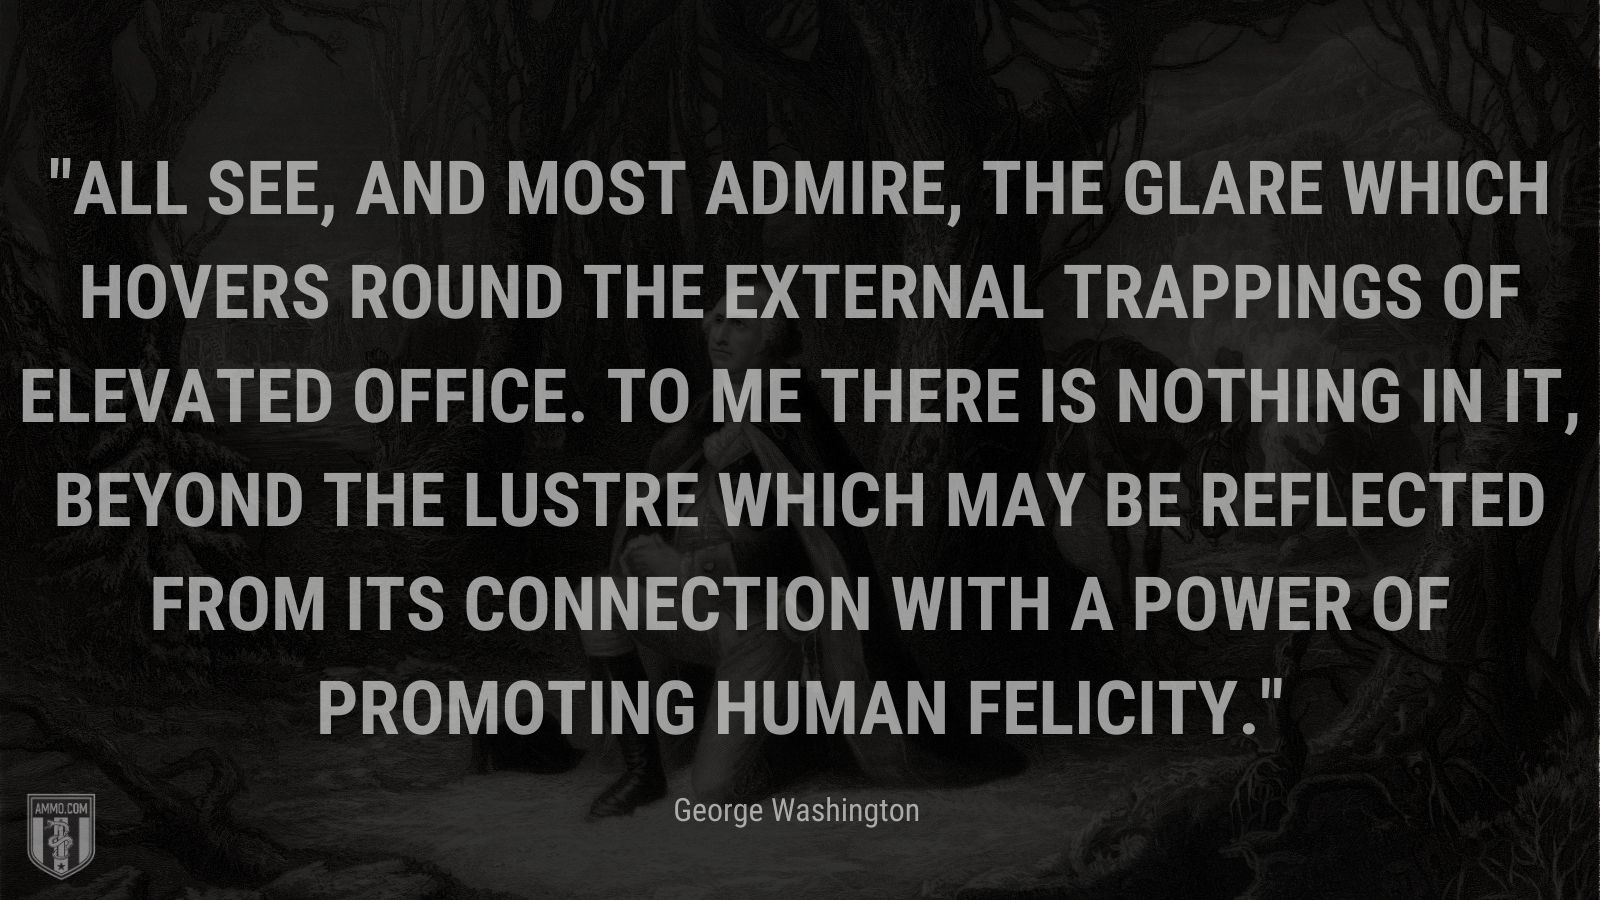 """""""All see, and most admire, the glare which hovers round the external trappings of elevated office. To me there is nothing in it, beyond the lustre which may be reflected from its connection with a power of promoting human felicity."""" - George Washington"""